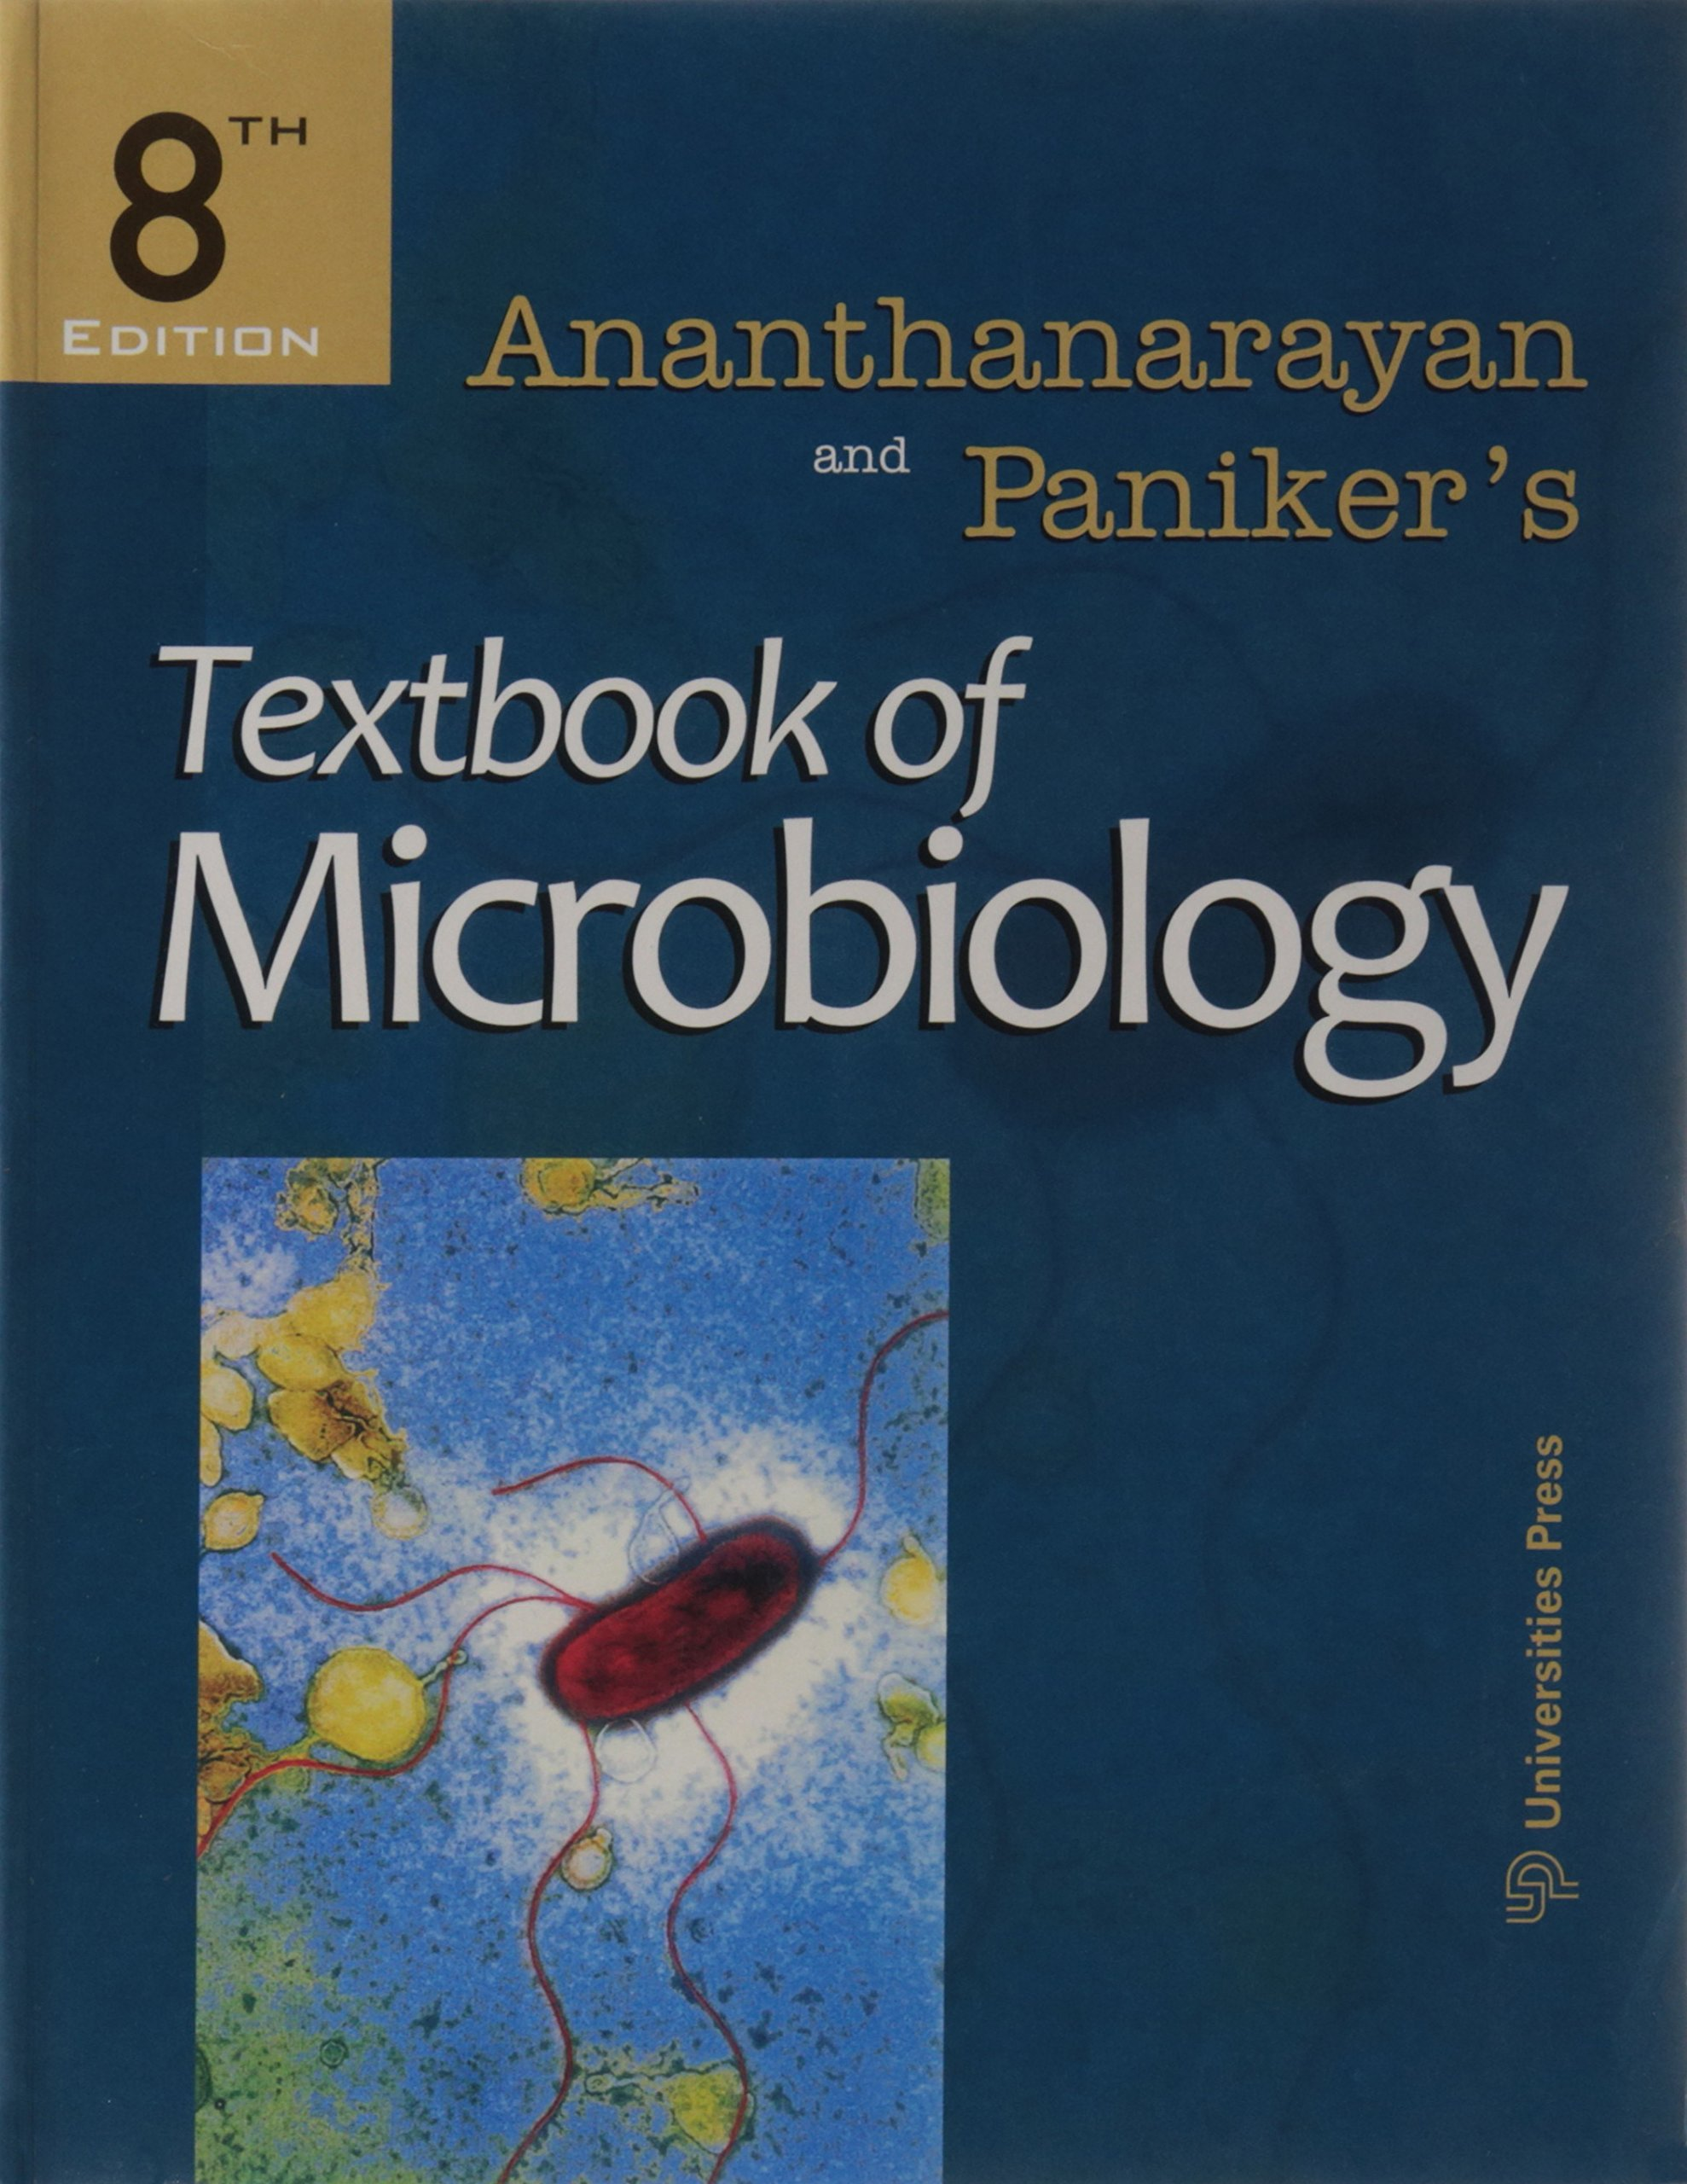 buy ananthanarayan and paniker s textbook of microbiology old